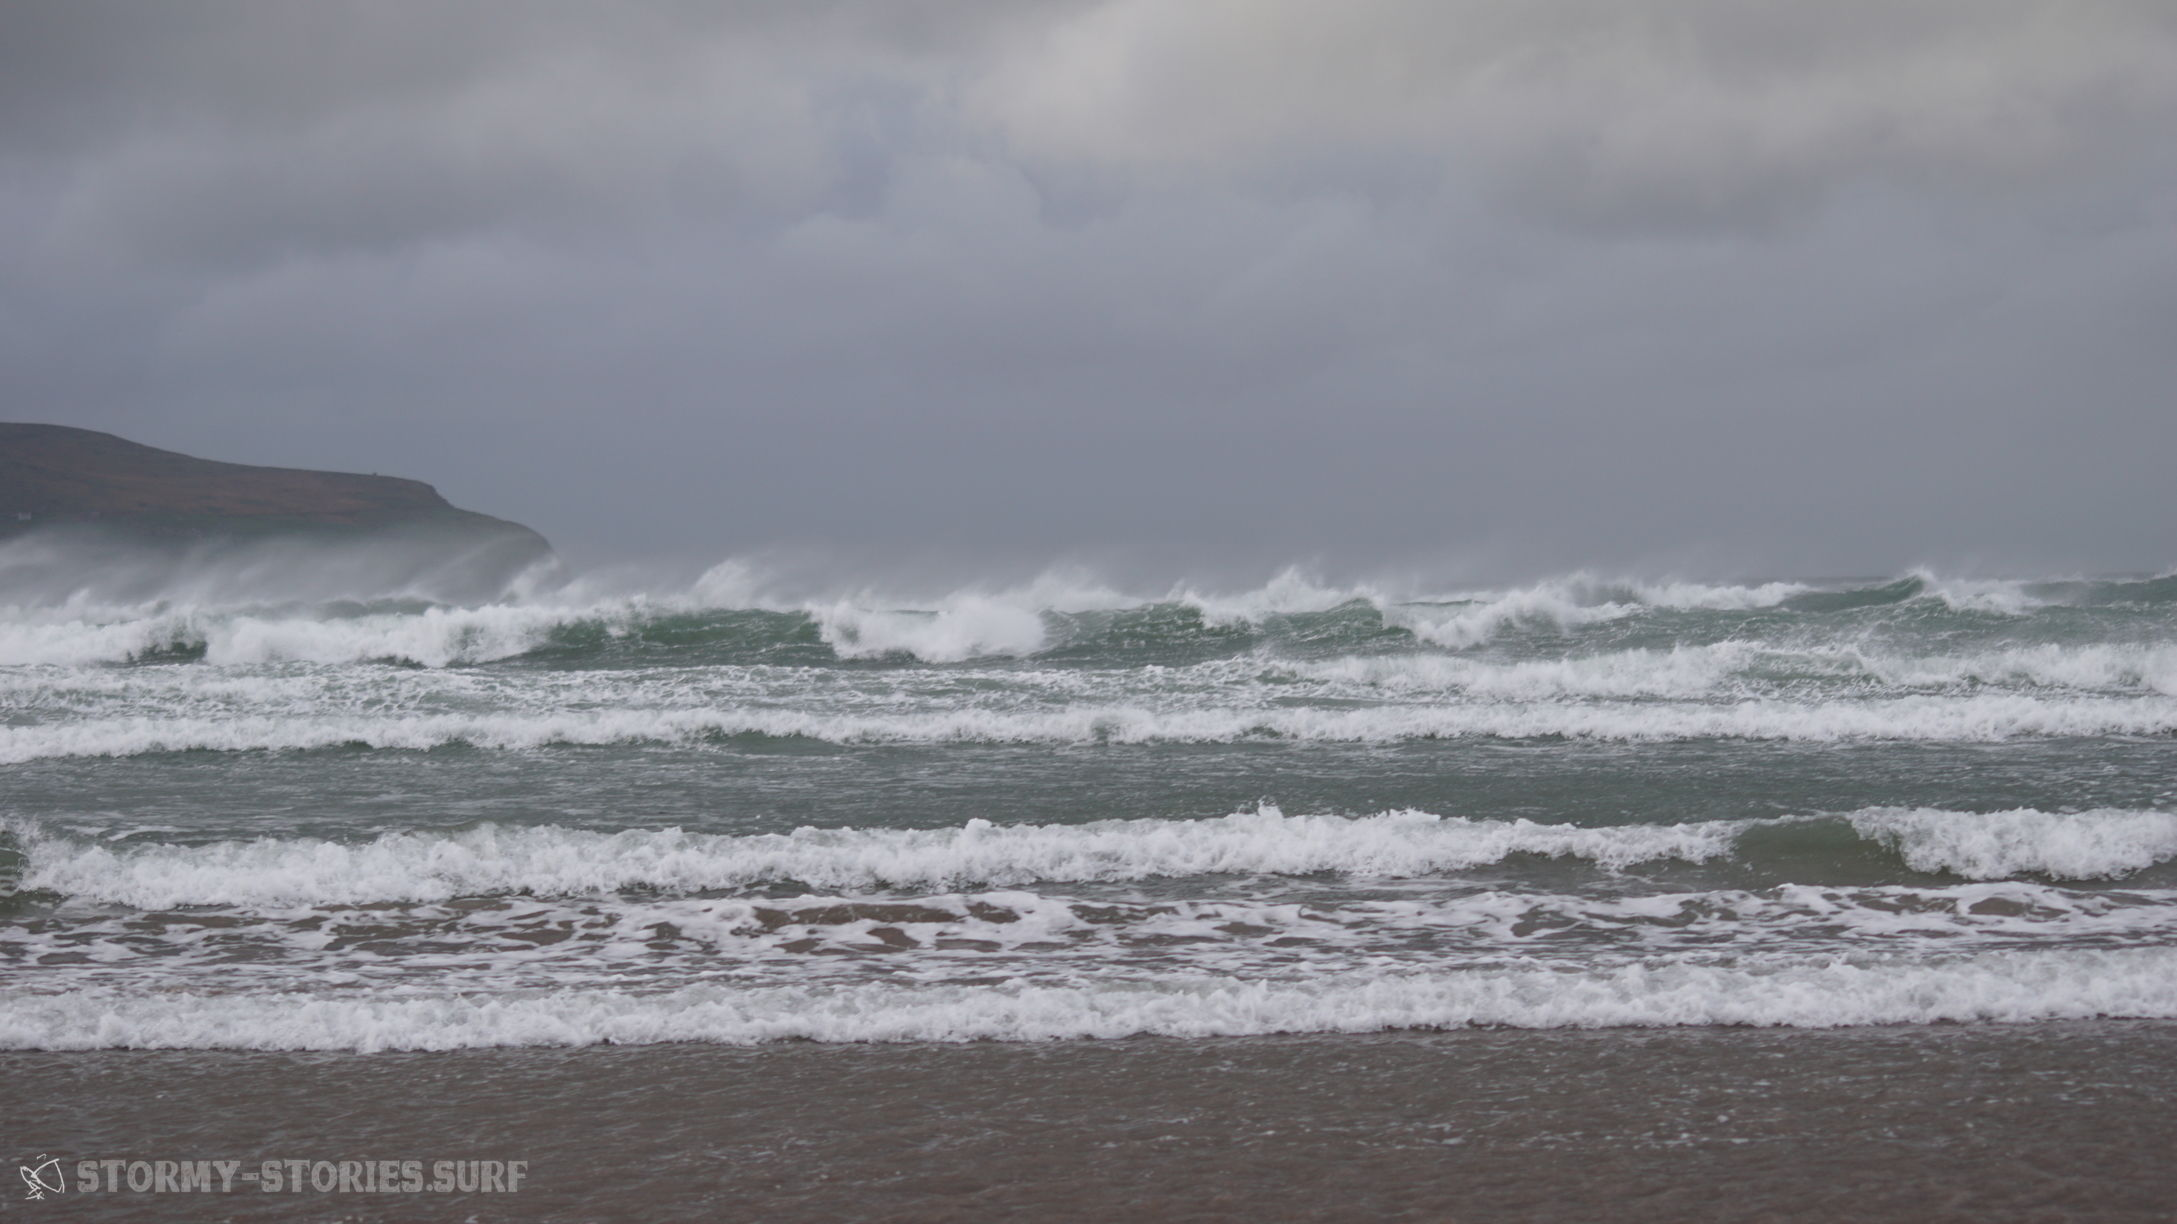 windsurf-stormy-stories-surf-travel-blog-ireland-irland-11-06-brandon-bay-stradbally-WM-35p-DSC09050